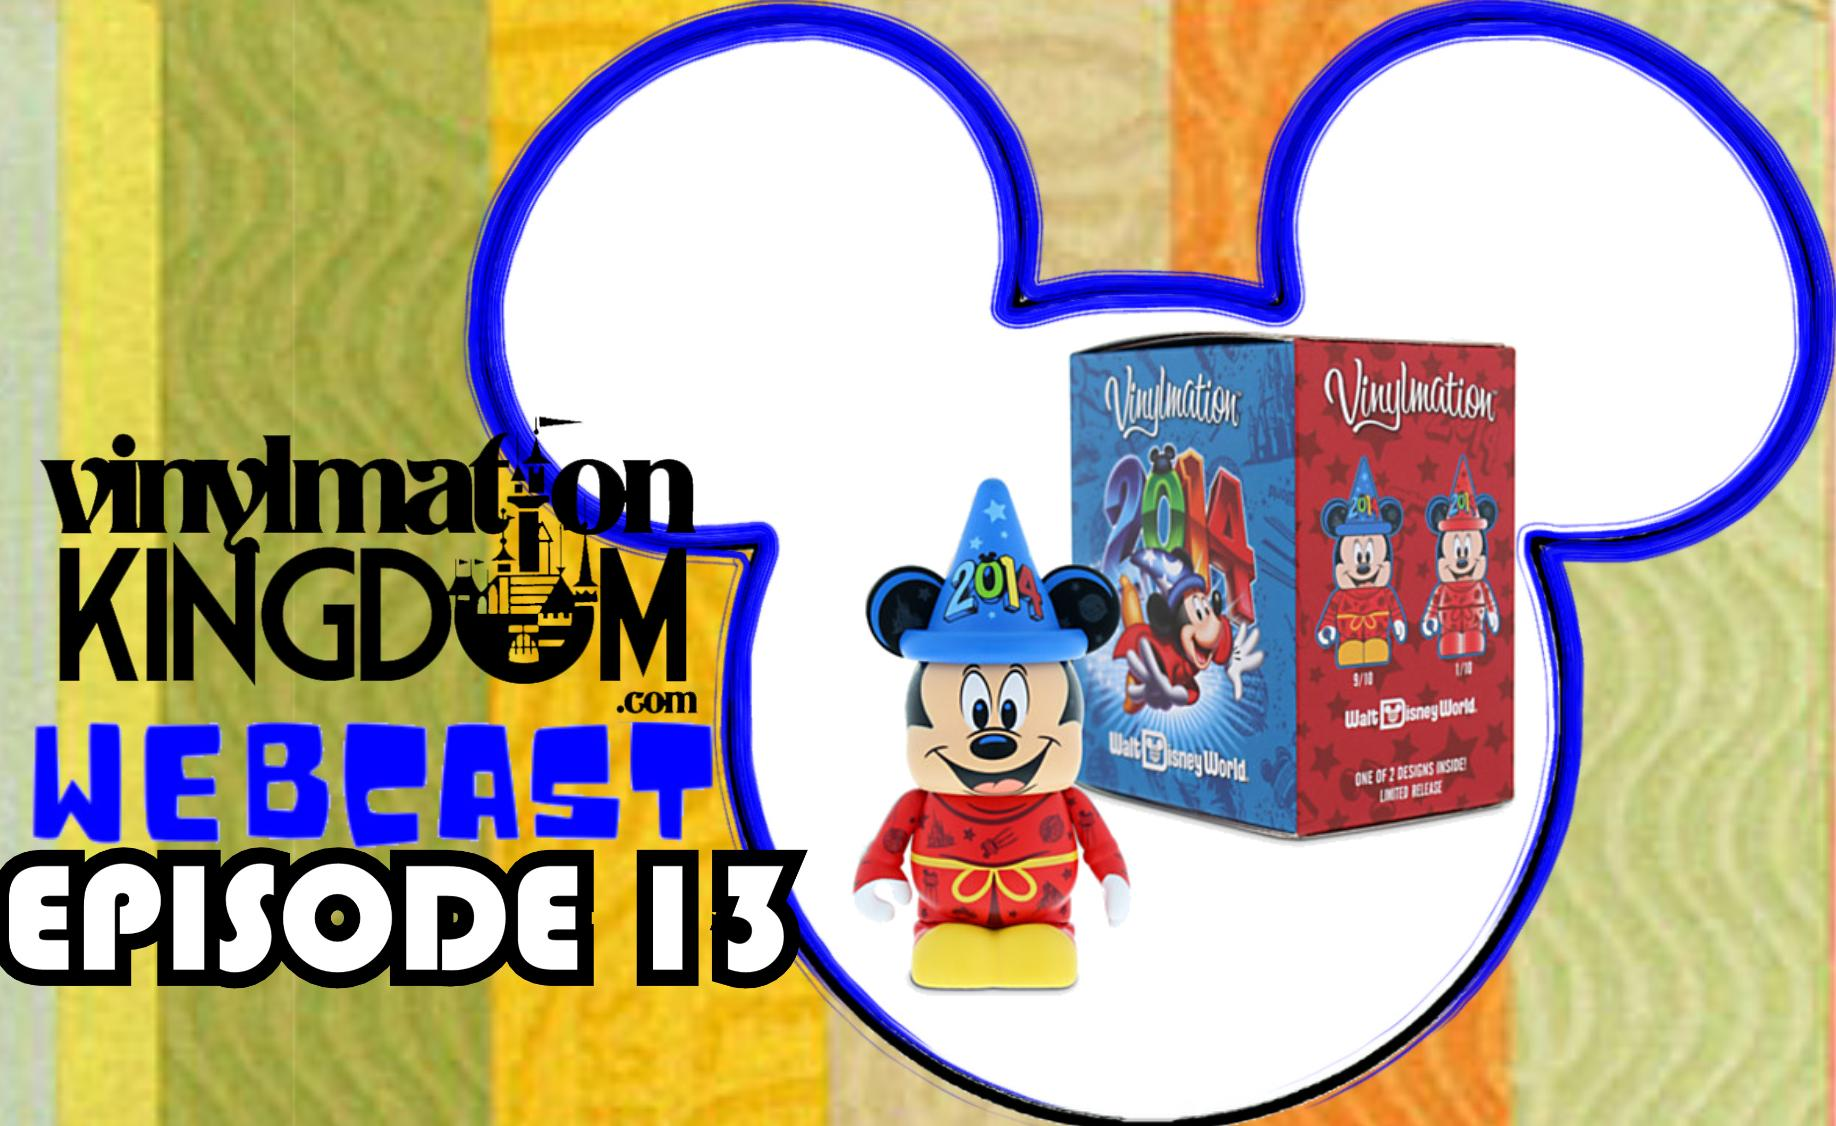 Vinylmation Kingdom Webcast 13 – How Was 2014 For Vinylmation Collectors?